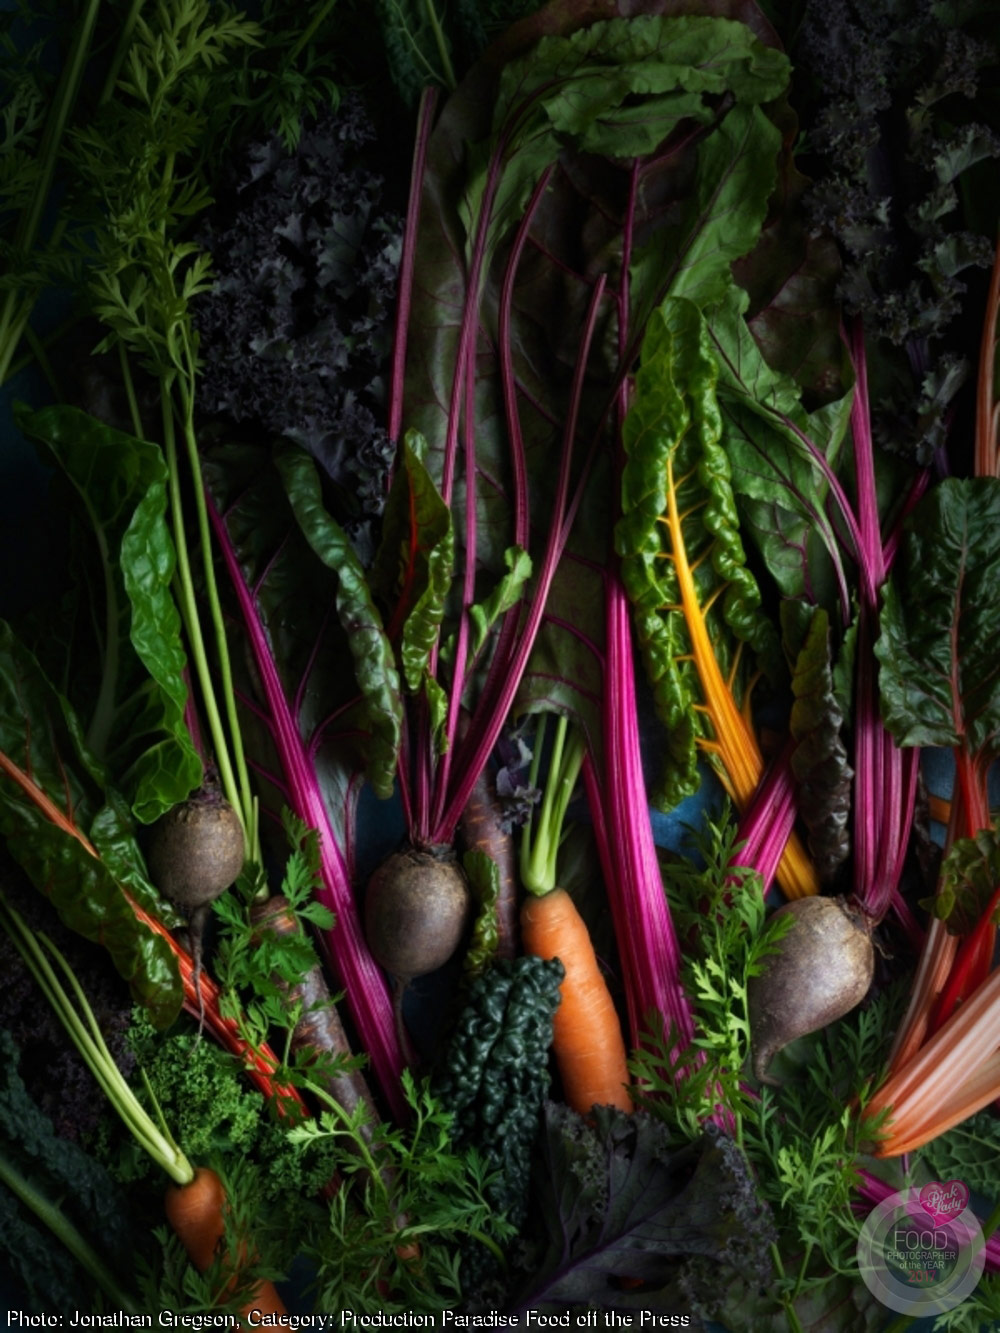 © Jonathan Gregson, United Kingdom, 1st, Category Production Paradise Food off the Press, Pink Lady Food Photographer of the Year 2017 Winners